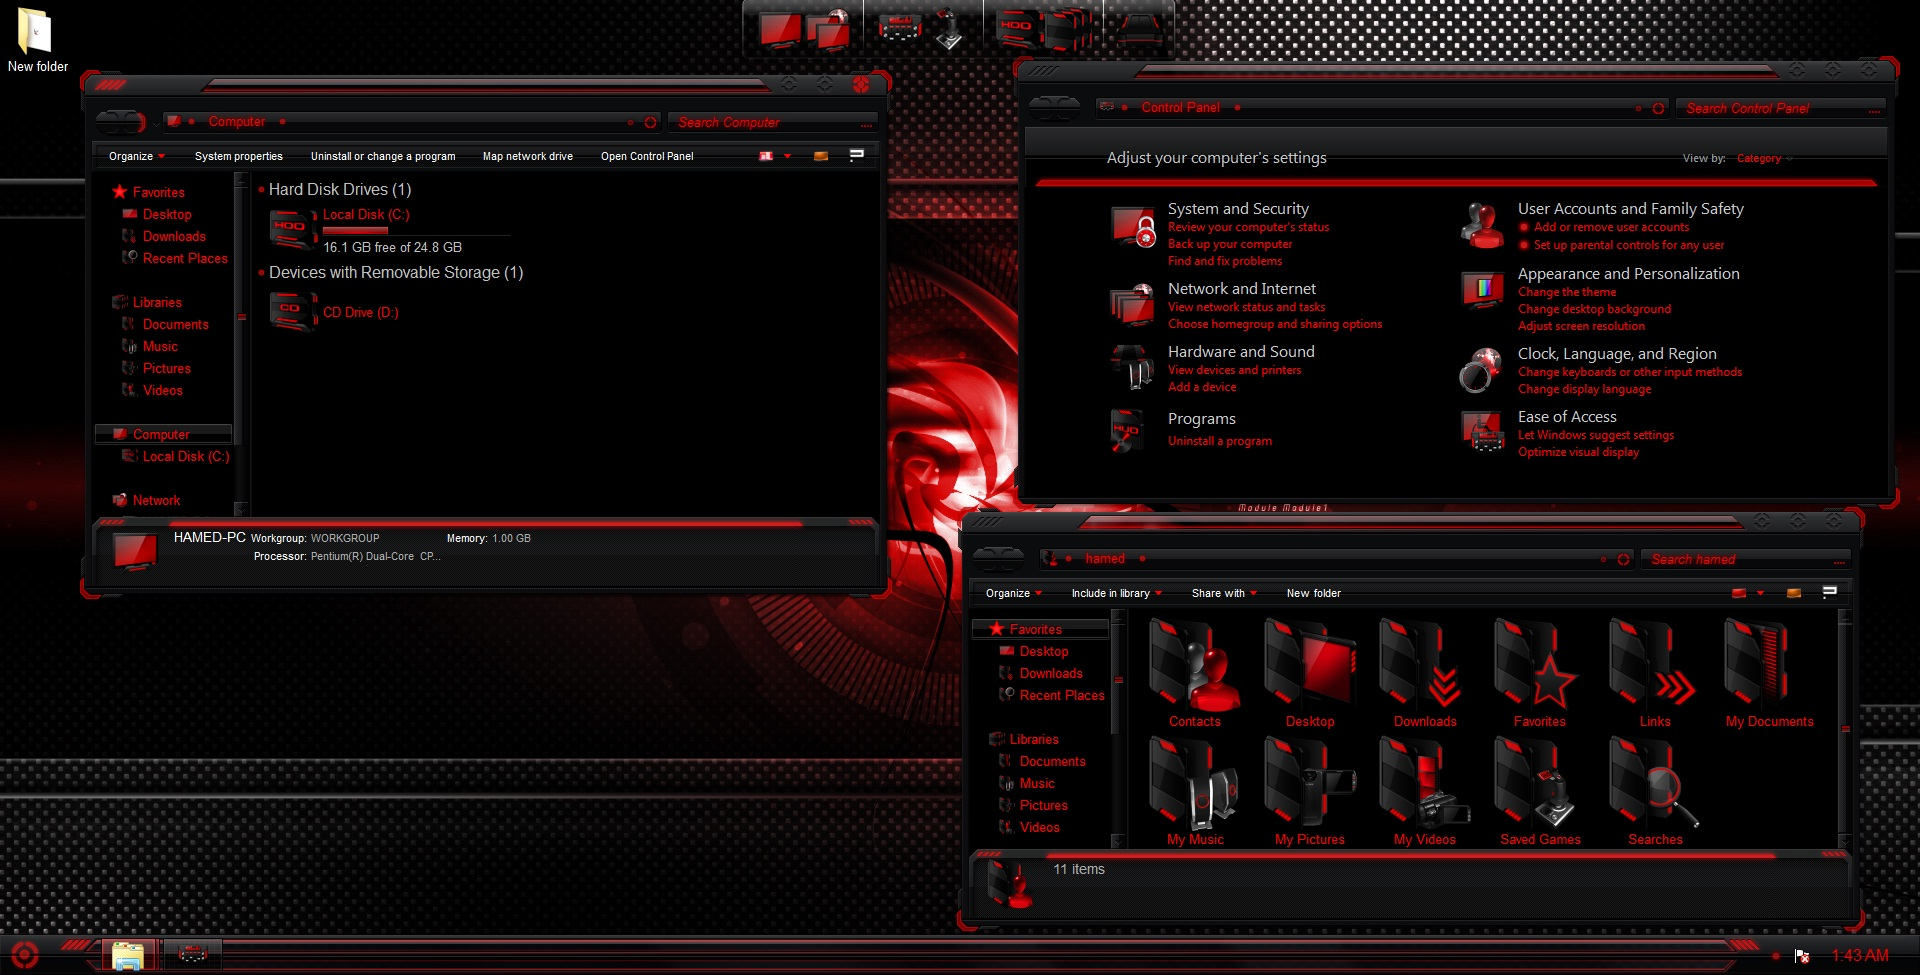 Alienware evolution skinpack for win7/8/8. 1 released skinpack.